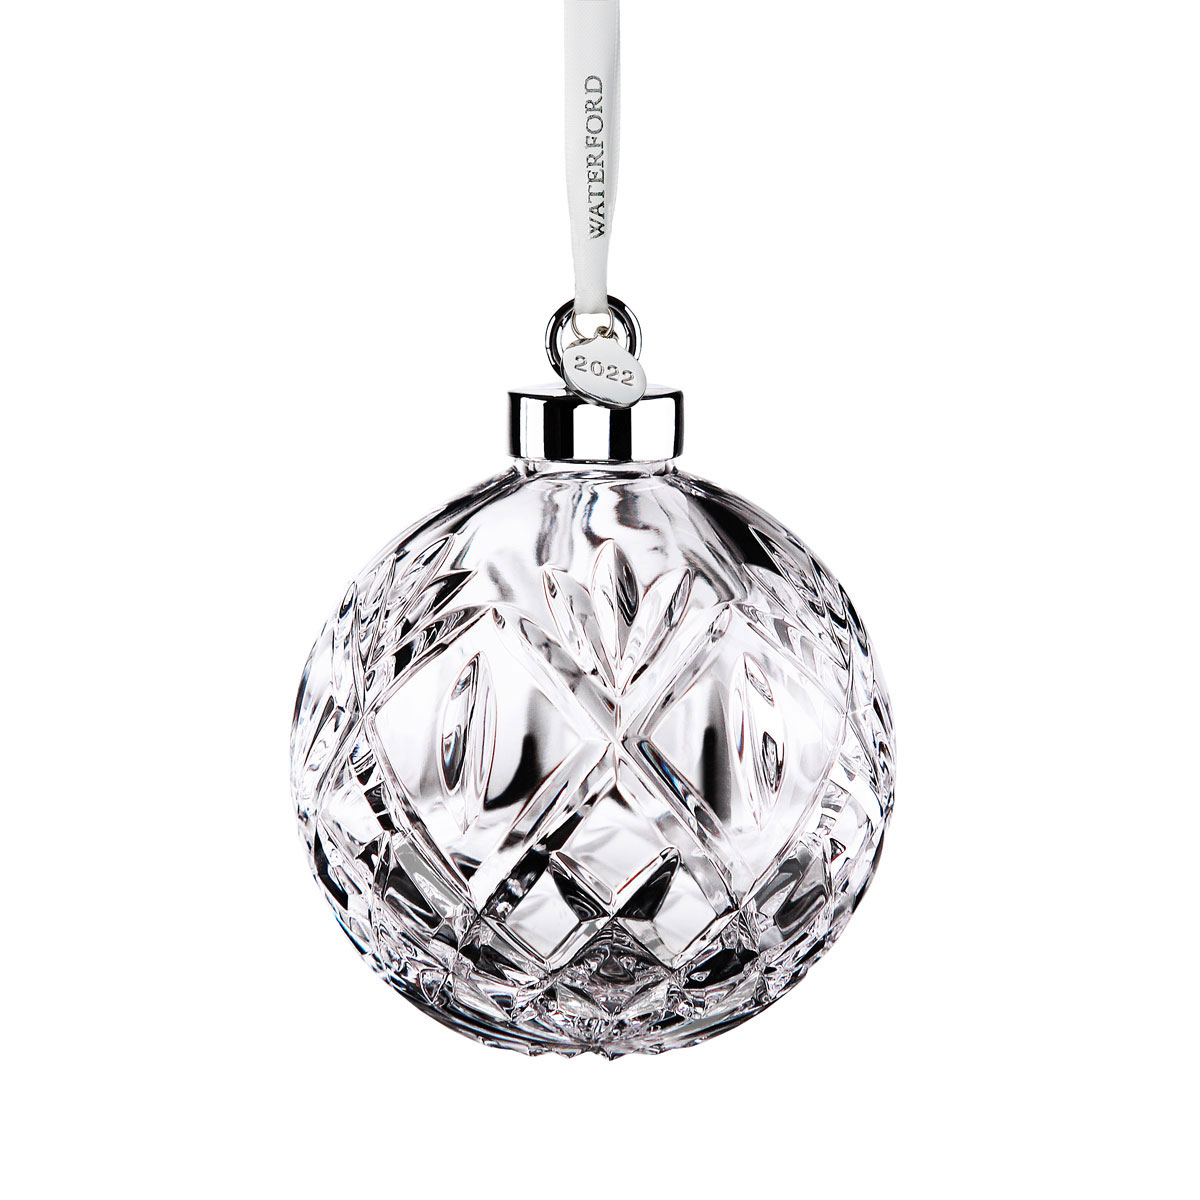 Waterford Crystal Christmas 2020 Waterford Crystal 2020 Huntley Ball Ornament, Limited Edition